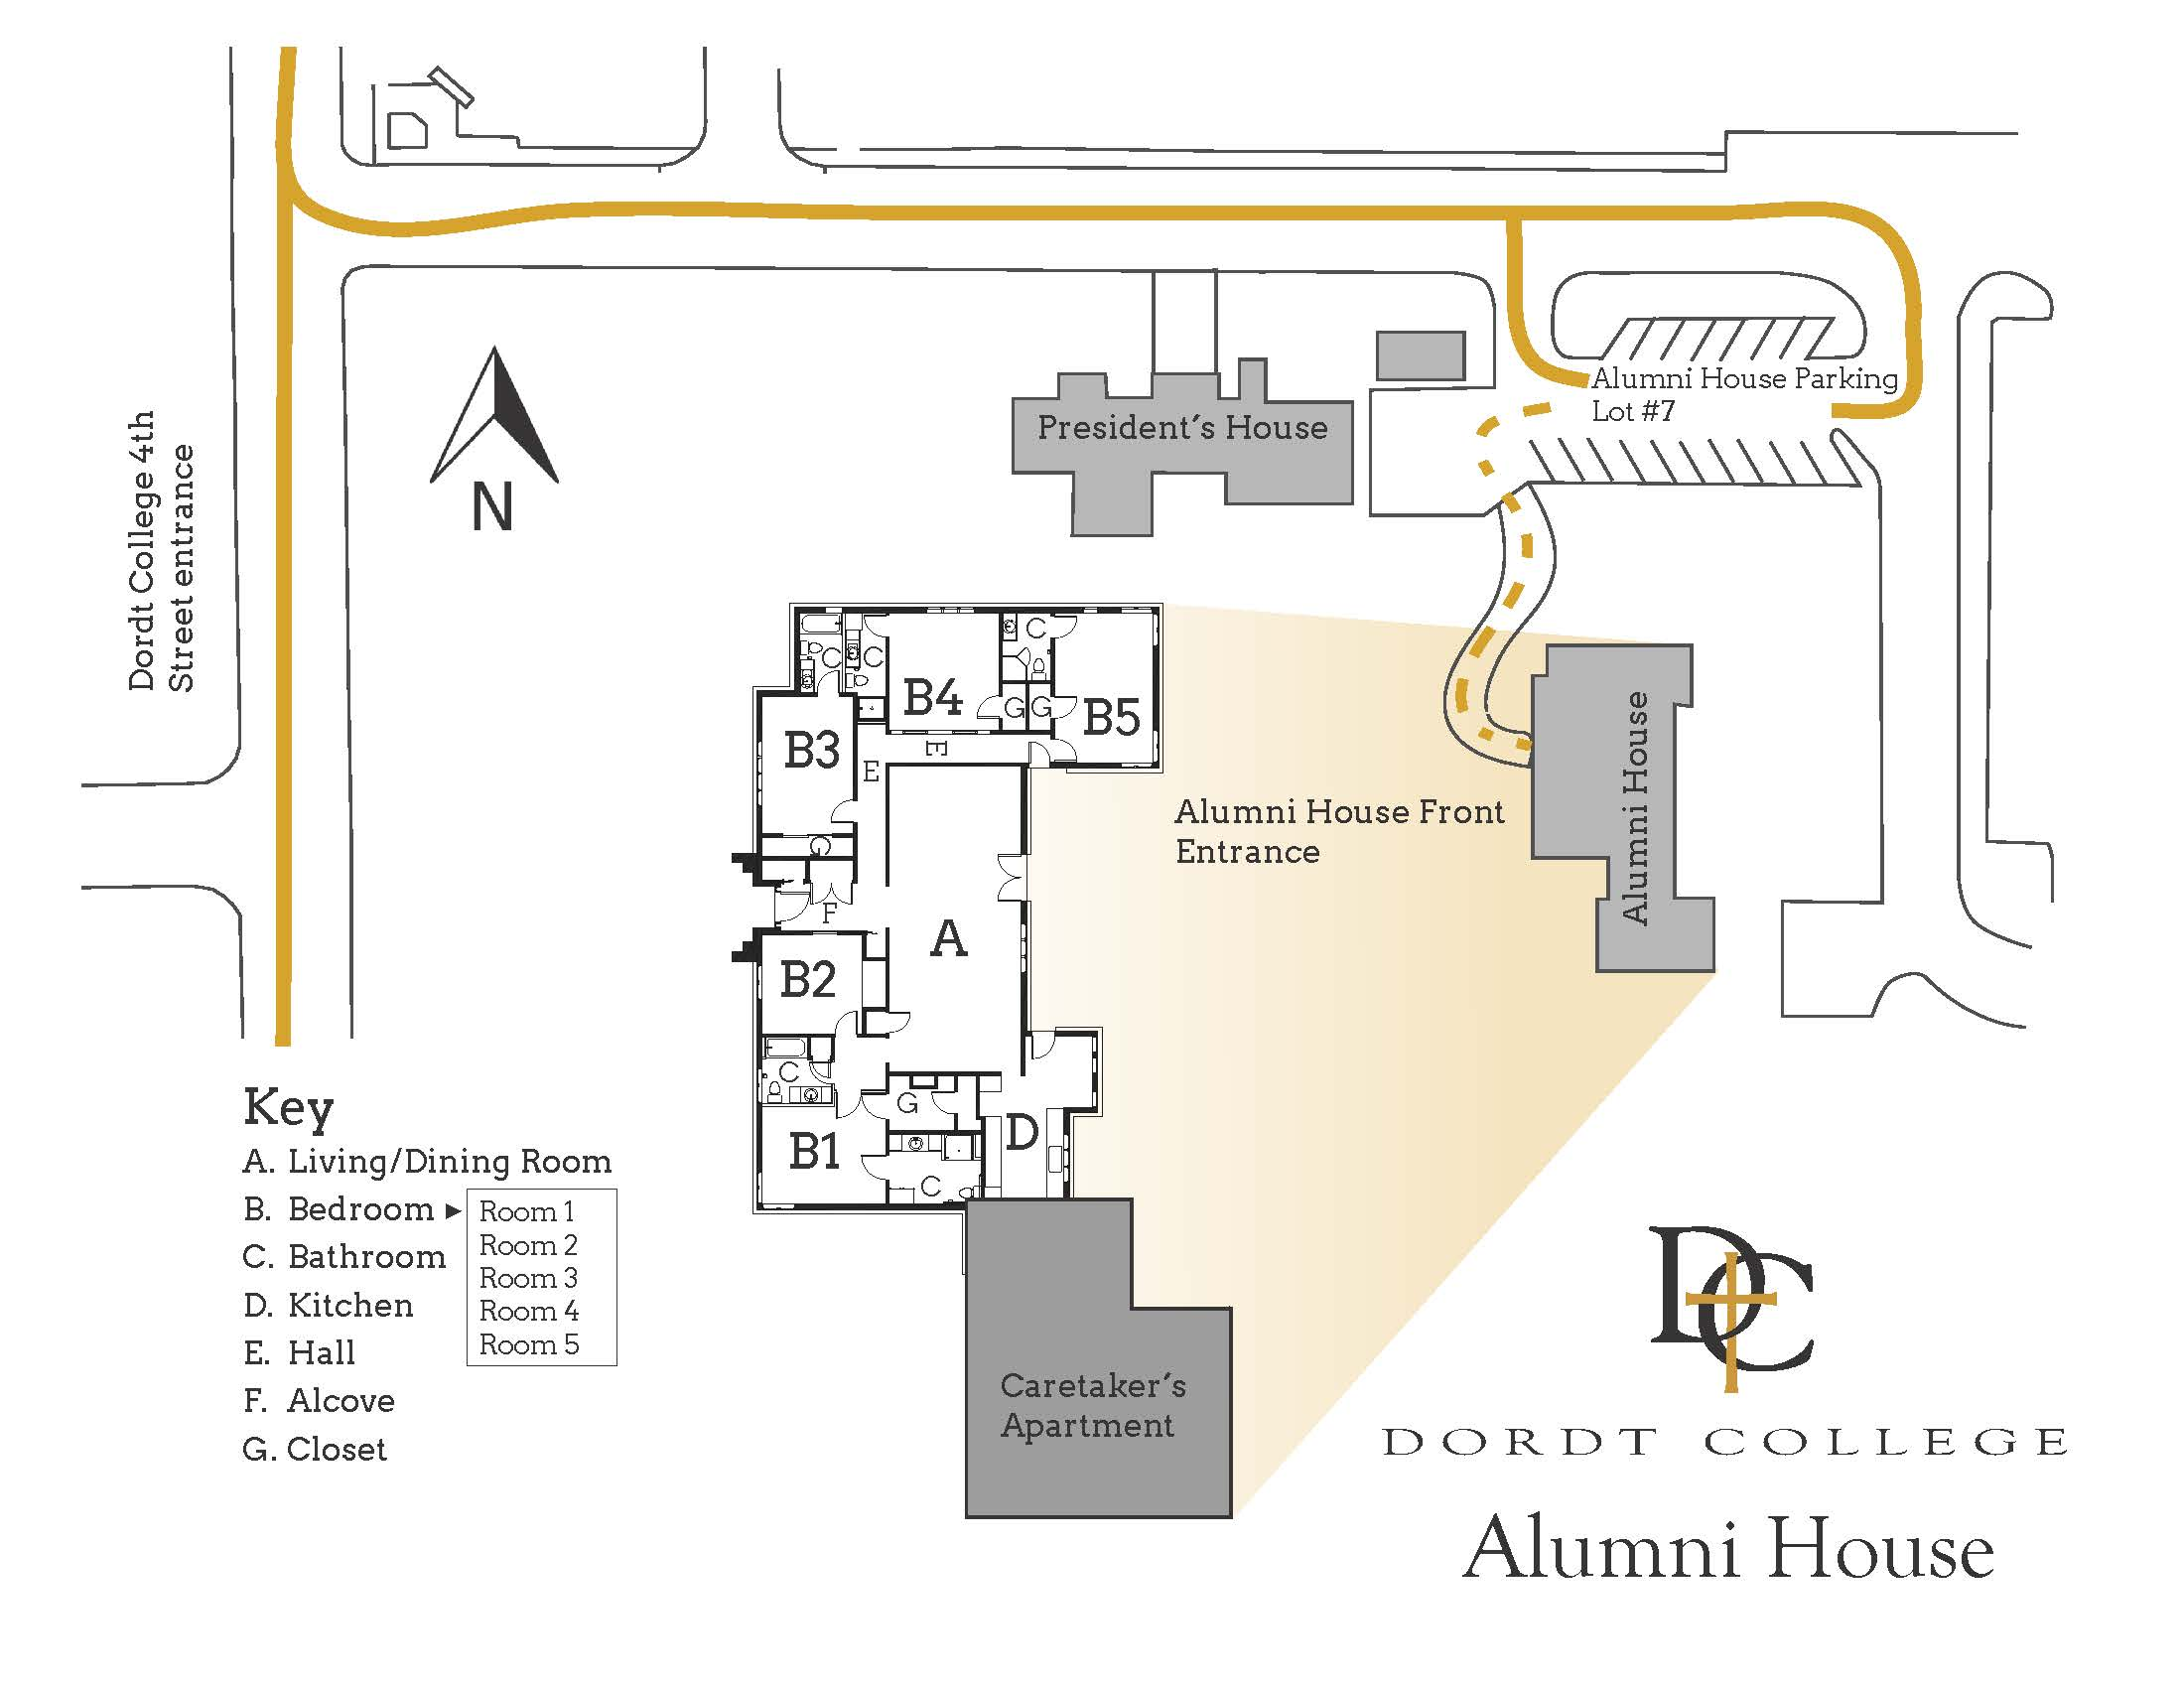 About The Alumni Guest House Get To Know Campus Student Life G 722 Block Diagram Floorplan